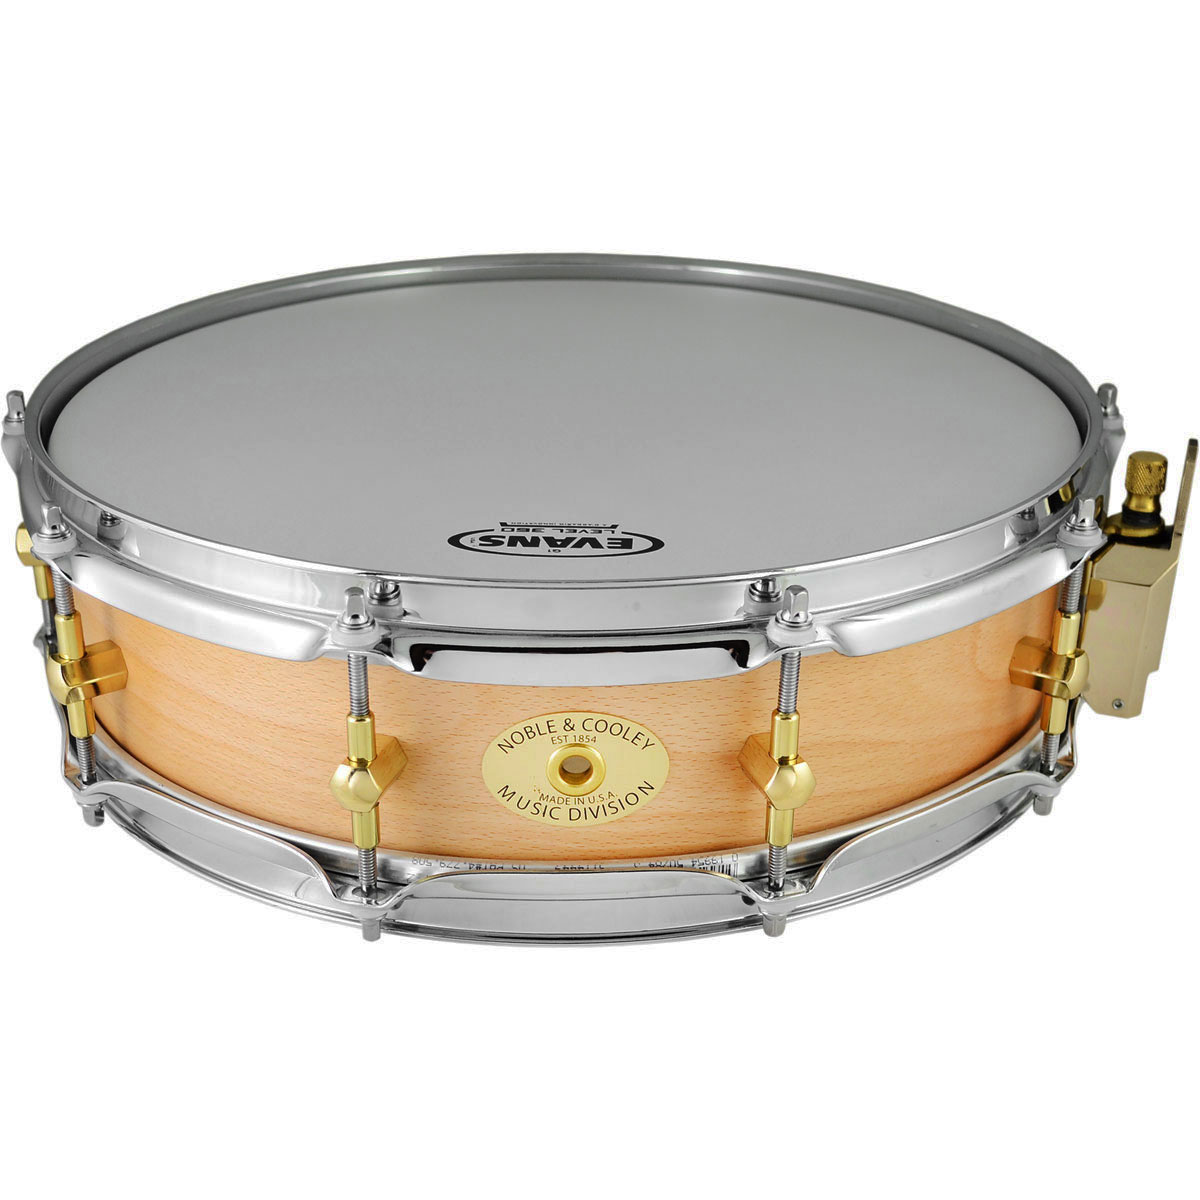 """Noble & Cooley 3 7/8"""" x 14"""" Classic Solid Shell Beech Piccolo Snare Drum in Clear Oil"""